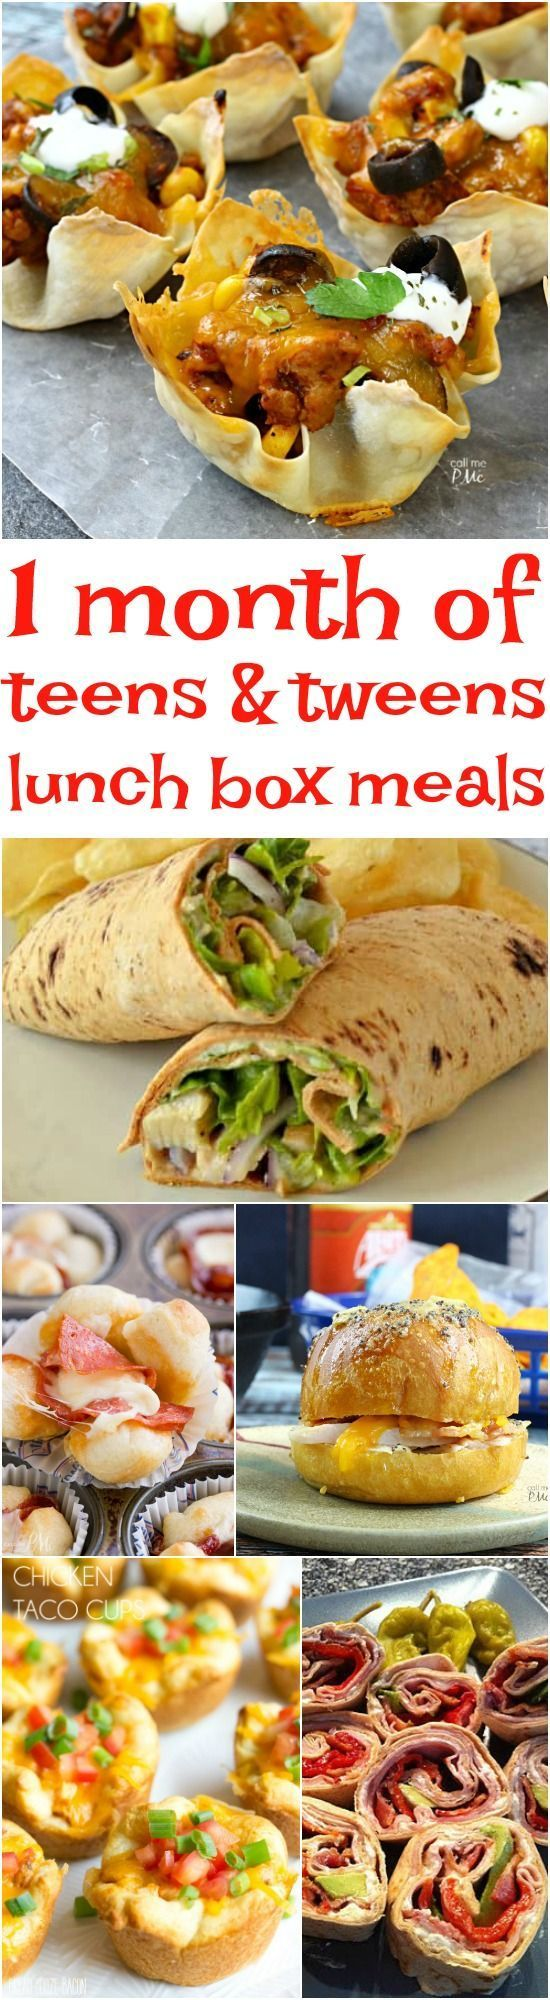 recipes -1 Month of Lunchbox Ideas for Tweens and Teens -try to remember when packing their lunches that meals high in fiber and protein will keep them full longer.